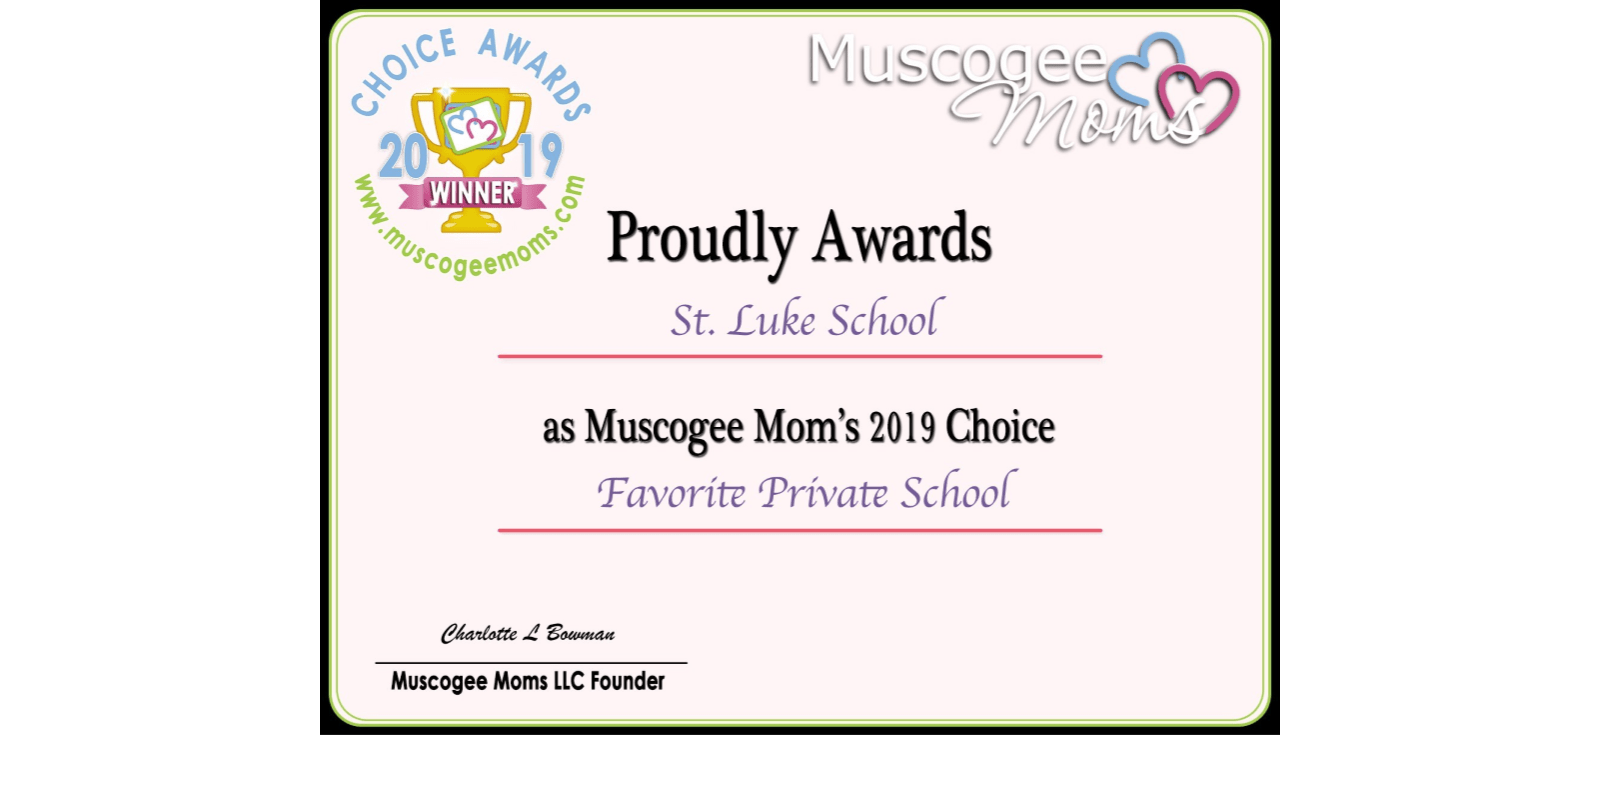 2019 Moms' Choice Award Winner!